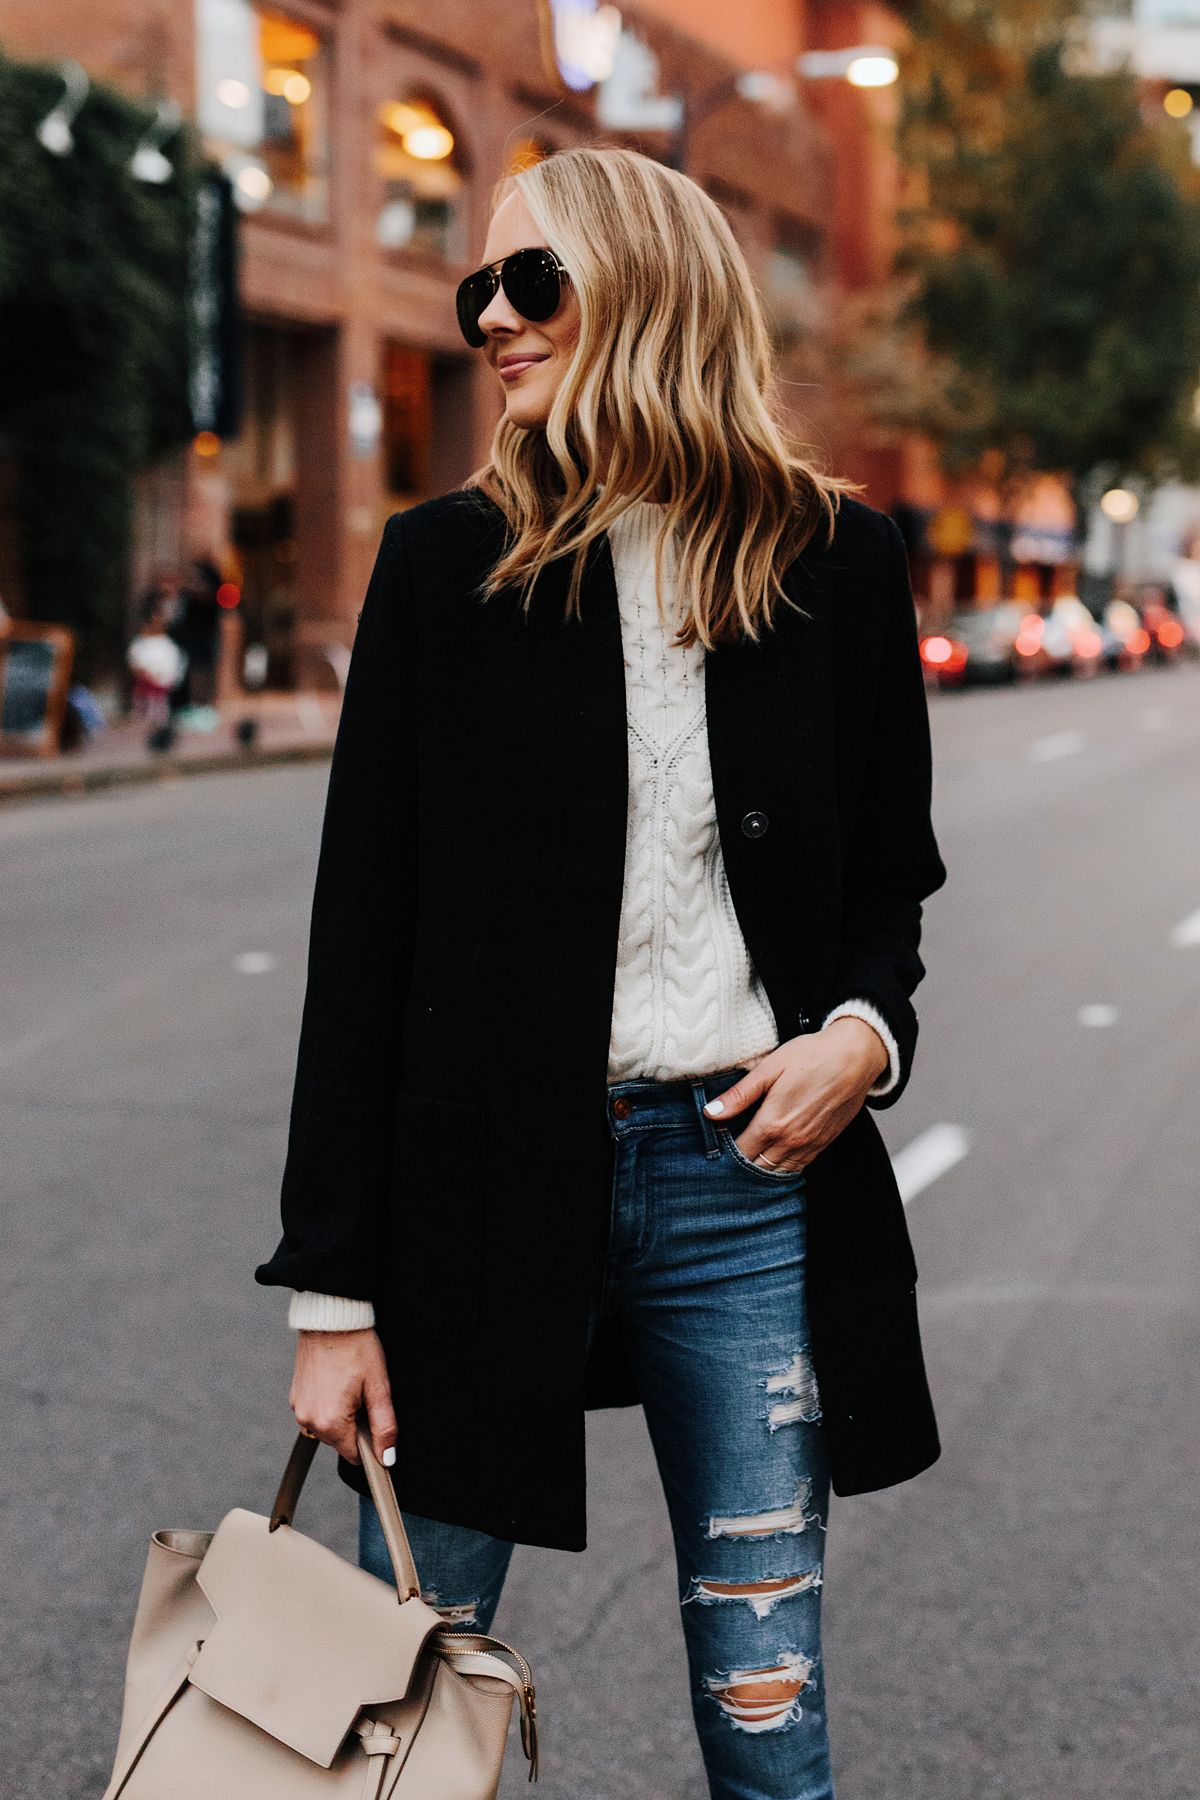 2b9f52e75df Blonde Woman Wearing Abercrombie Black Wool Coat Cable Knit White Sweater  Denim Ripped Skinny Jeans Outfit Fashion Jackson San Diego Fashion Blogger  Street ...